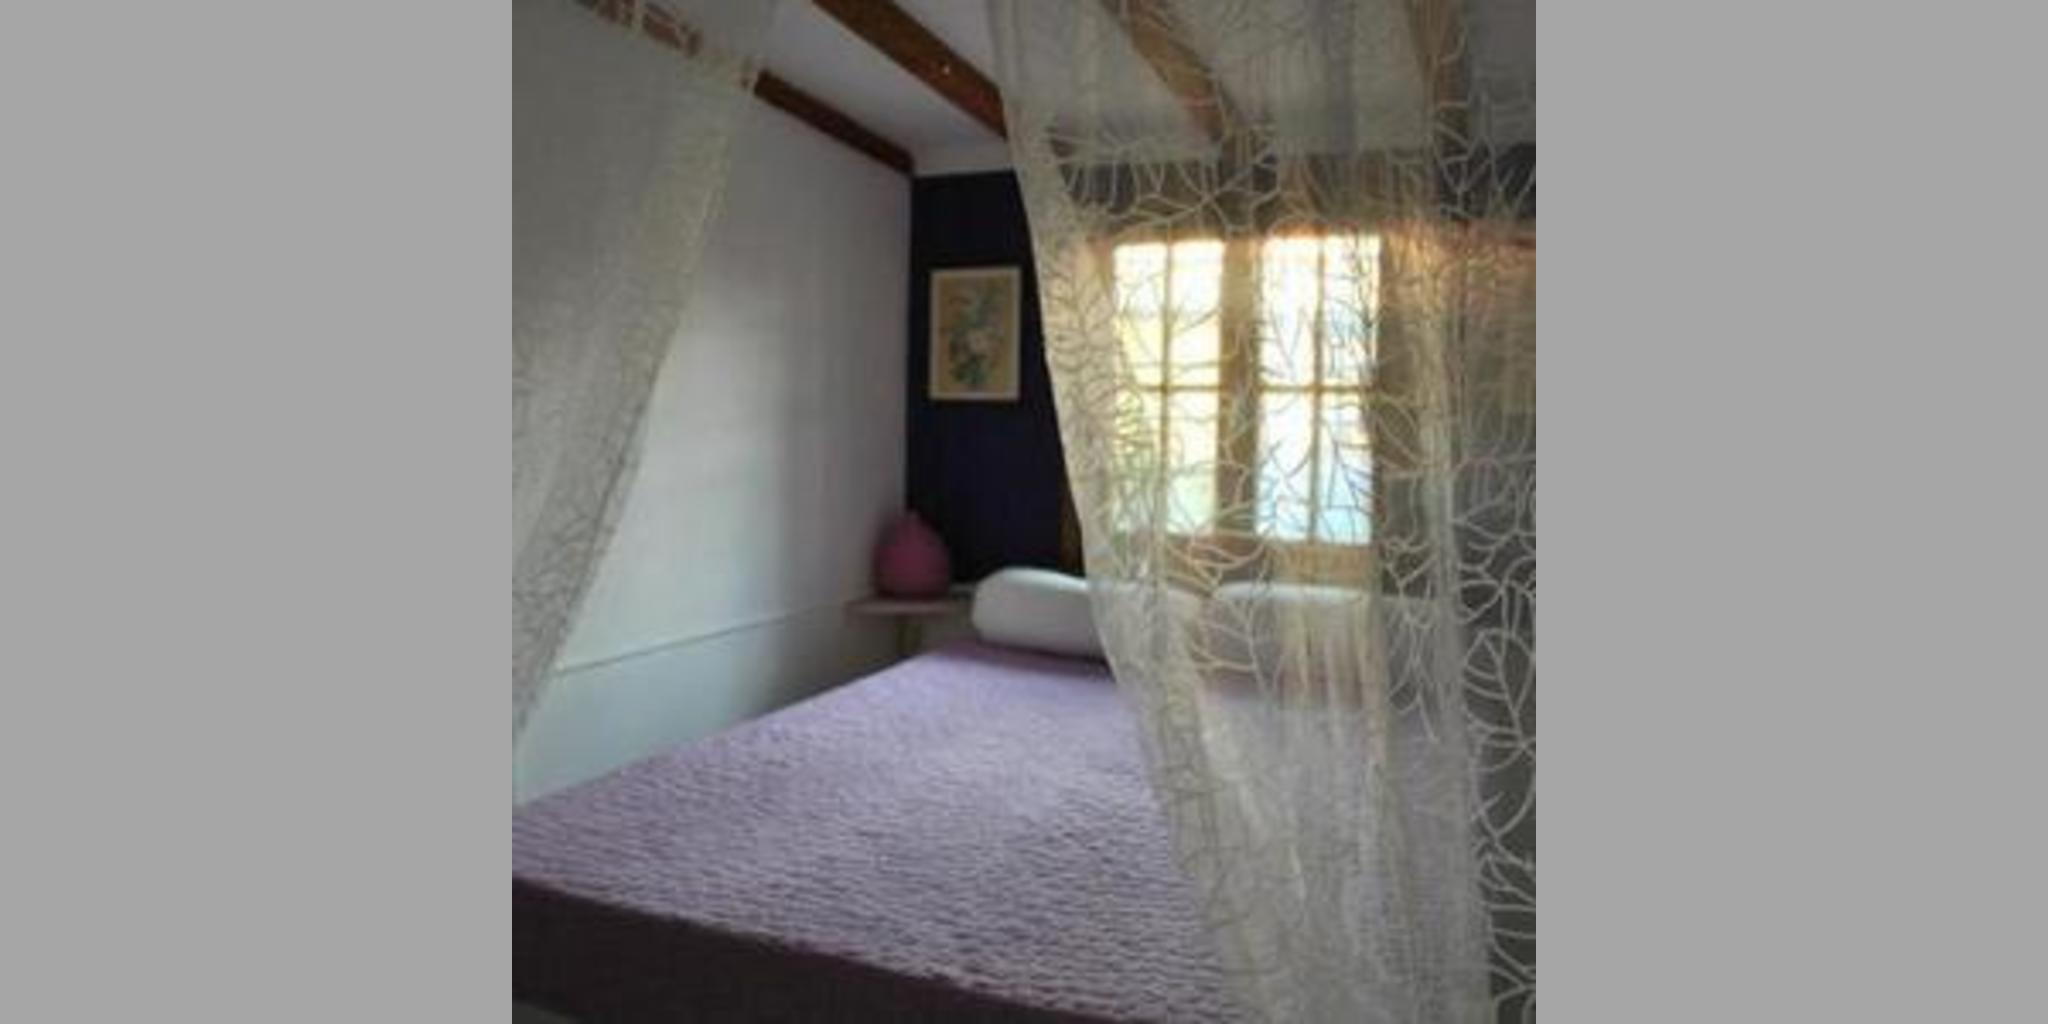 Bed & Breakfast Sacrofano - B&B A Sacrofano